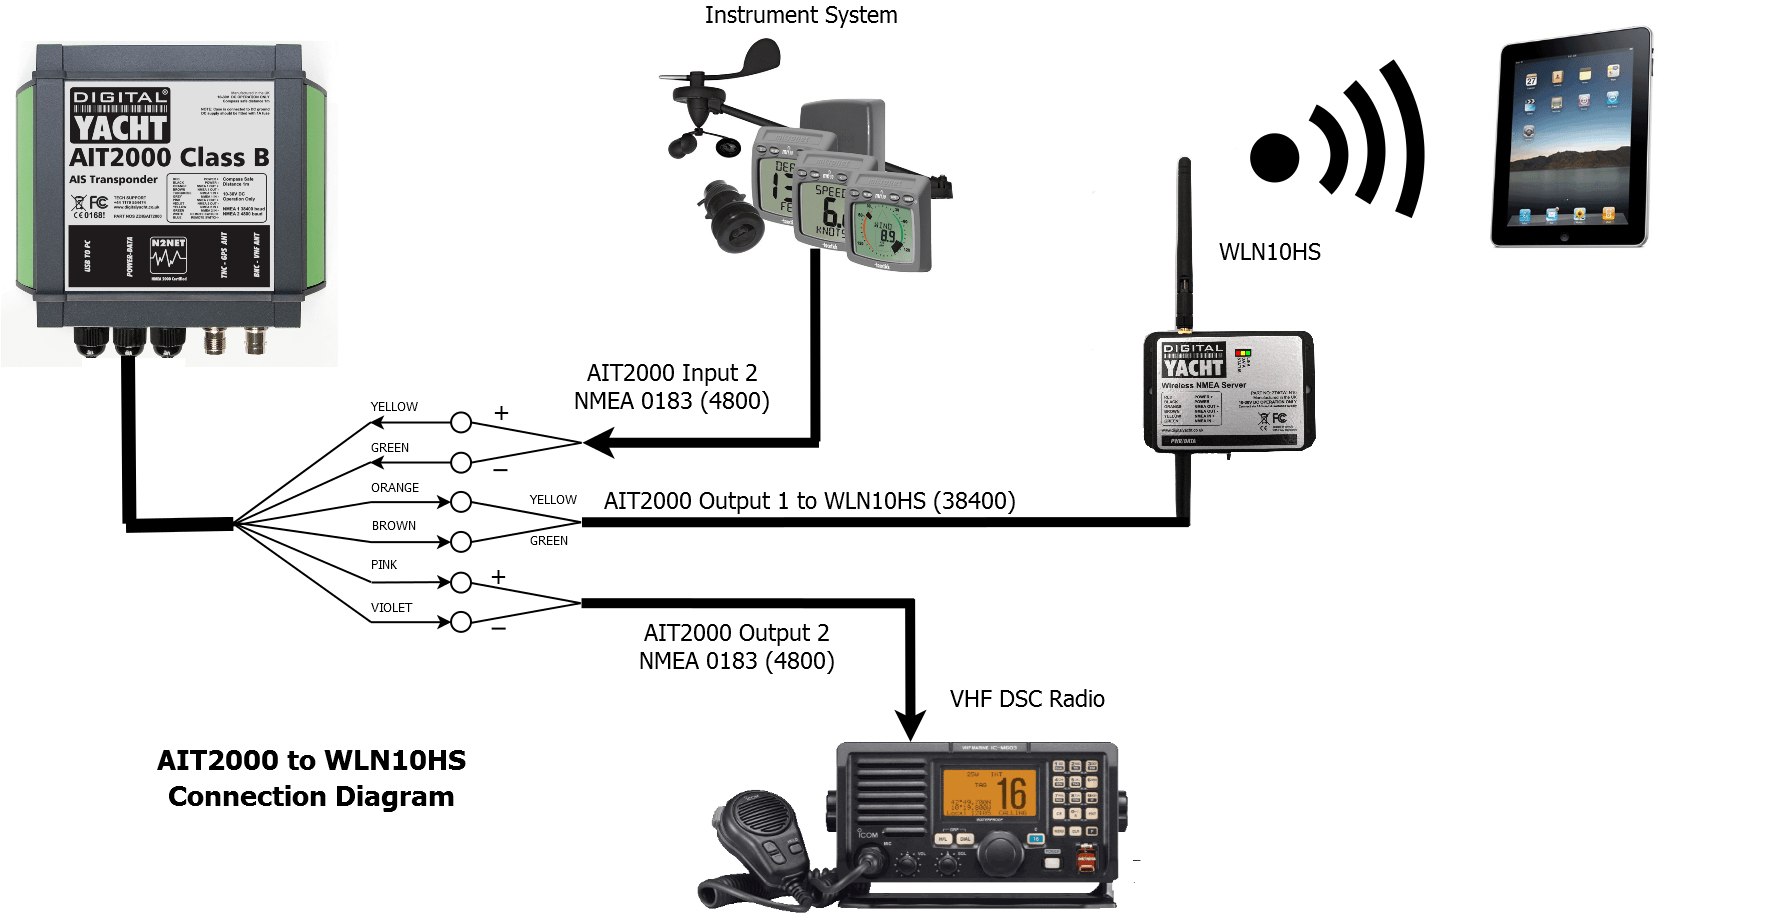 Wiring Details For Wireless Class B Transponder